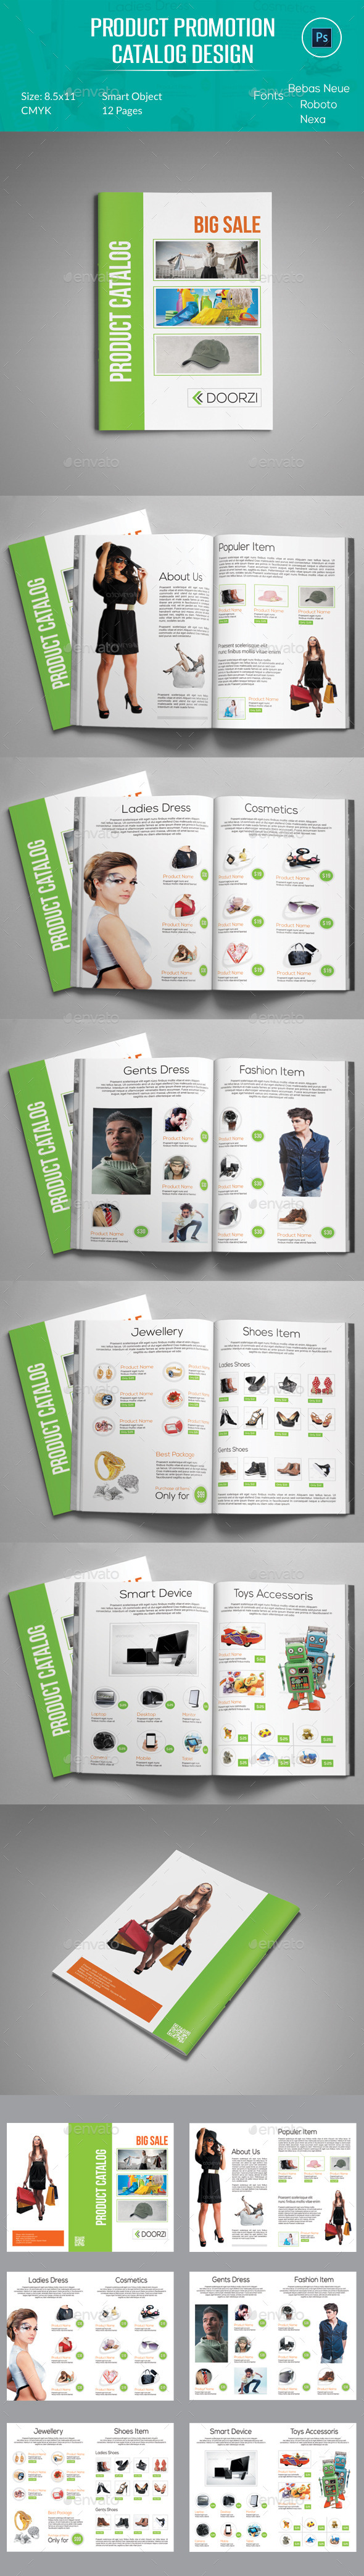 Product Promotion Catalog - Catalogs Brochures